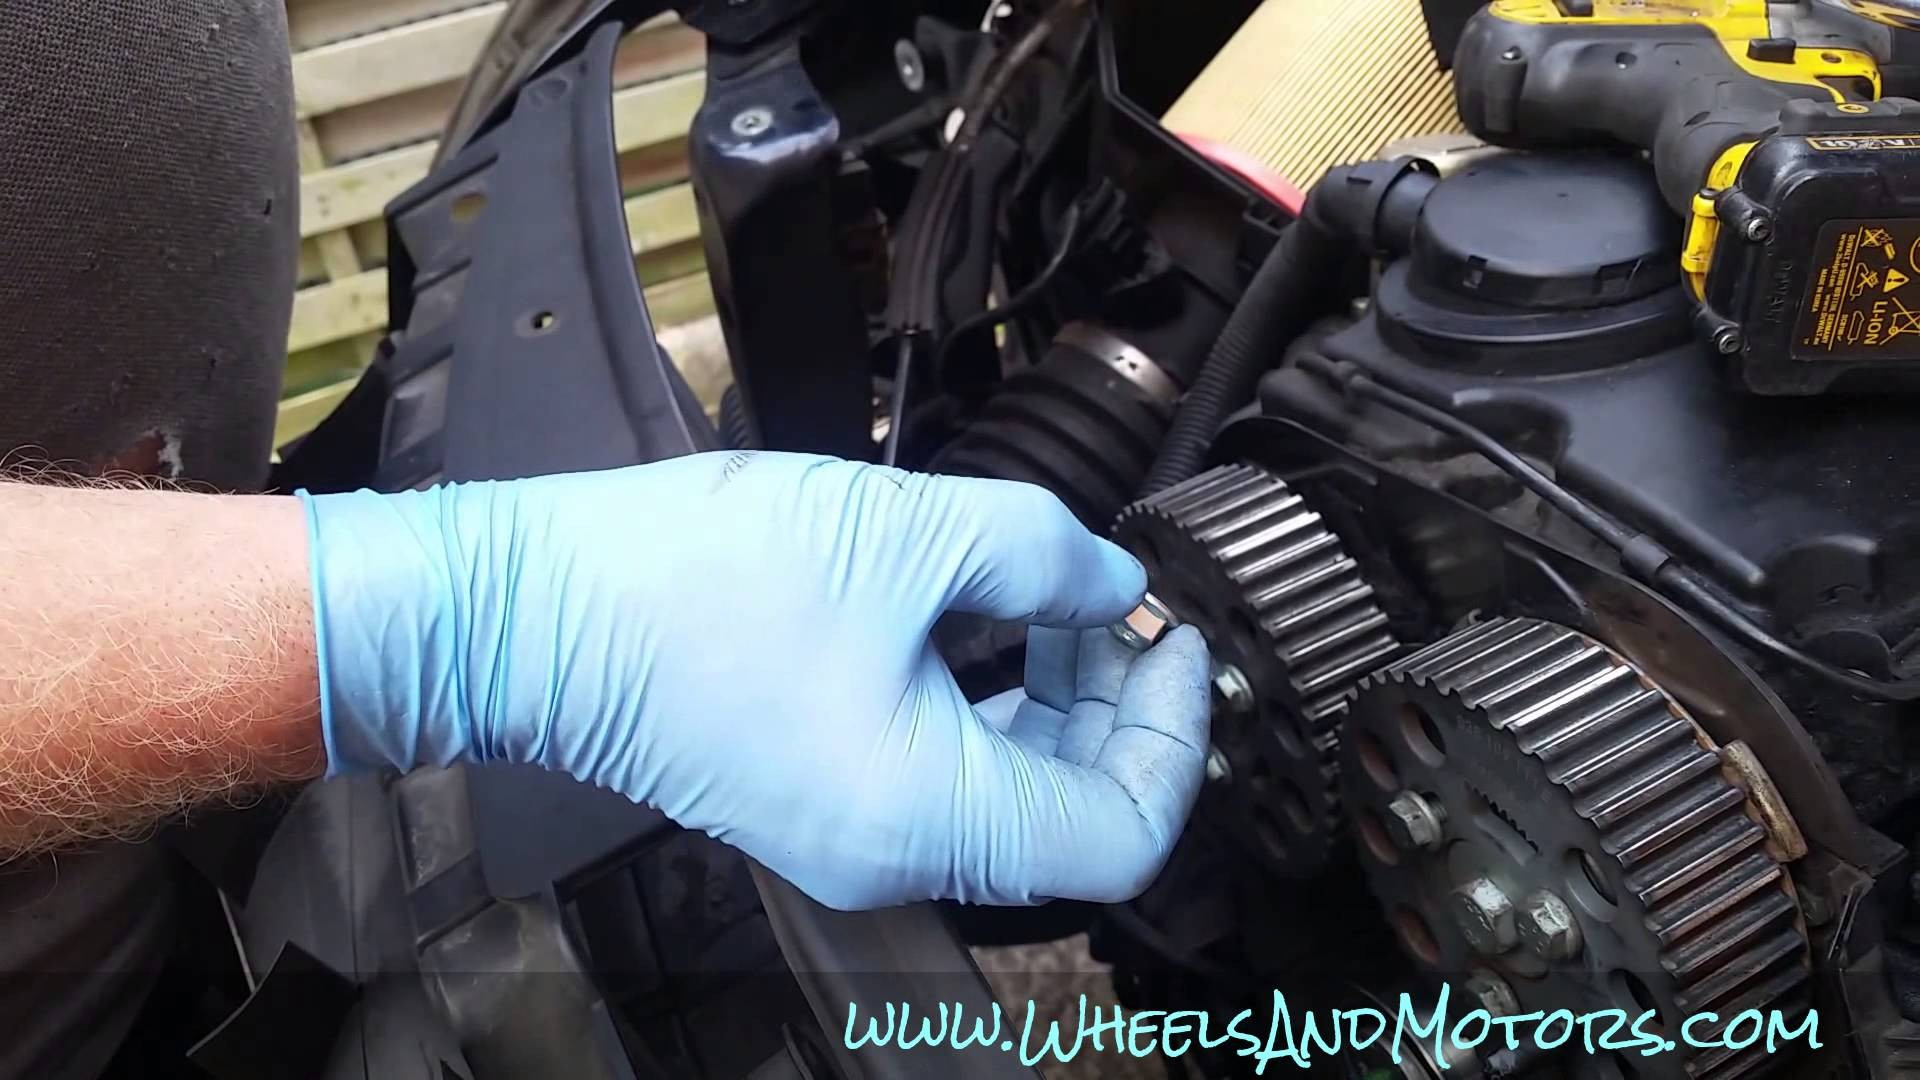 Diagram Of Car Water Pump How to Replace Timing Belt Cambelt and Water Pump On 2 0 Tdi Of Diagram Of Car Water Pump How to Change Engine Timing Belt Dodge Intrepid 3 5l 95 97 Part 2